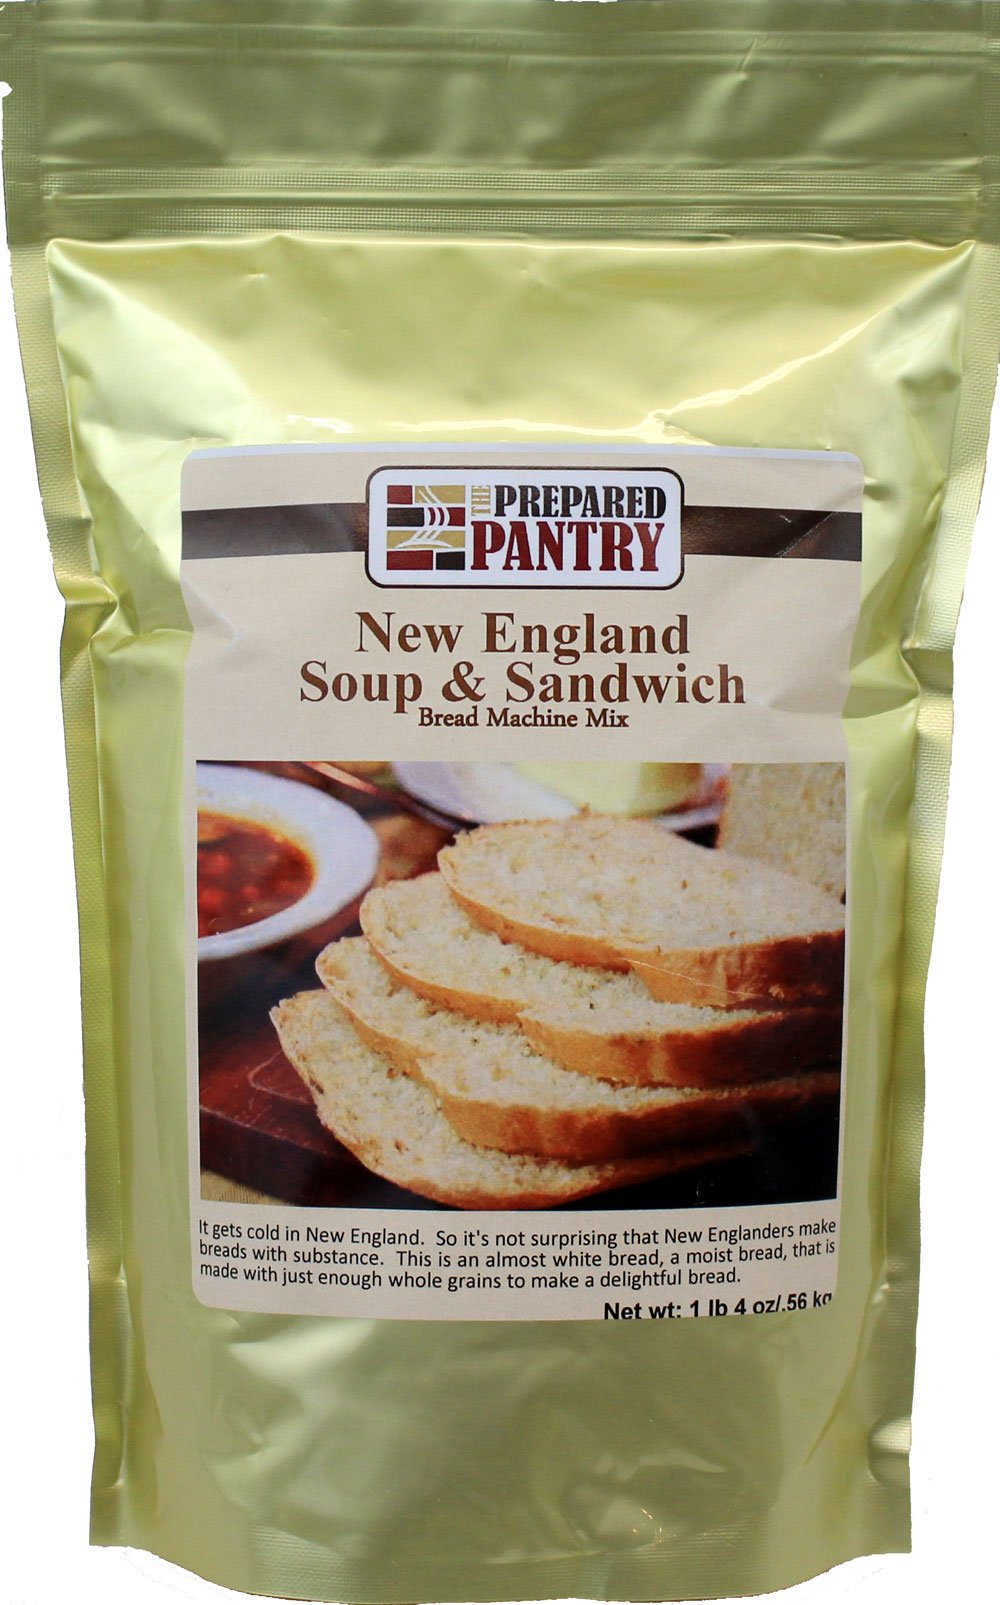 The Prepared Pantry New England Soup and Sandwich Bread Machine Mix, 20 Ounce (Pack of 20)